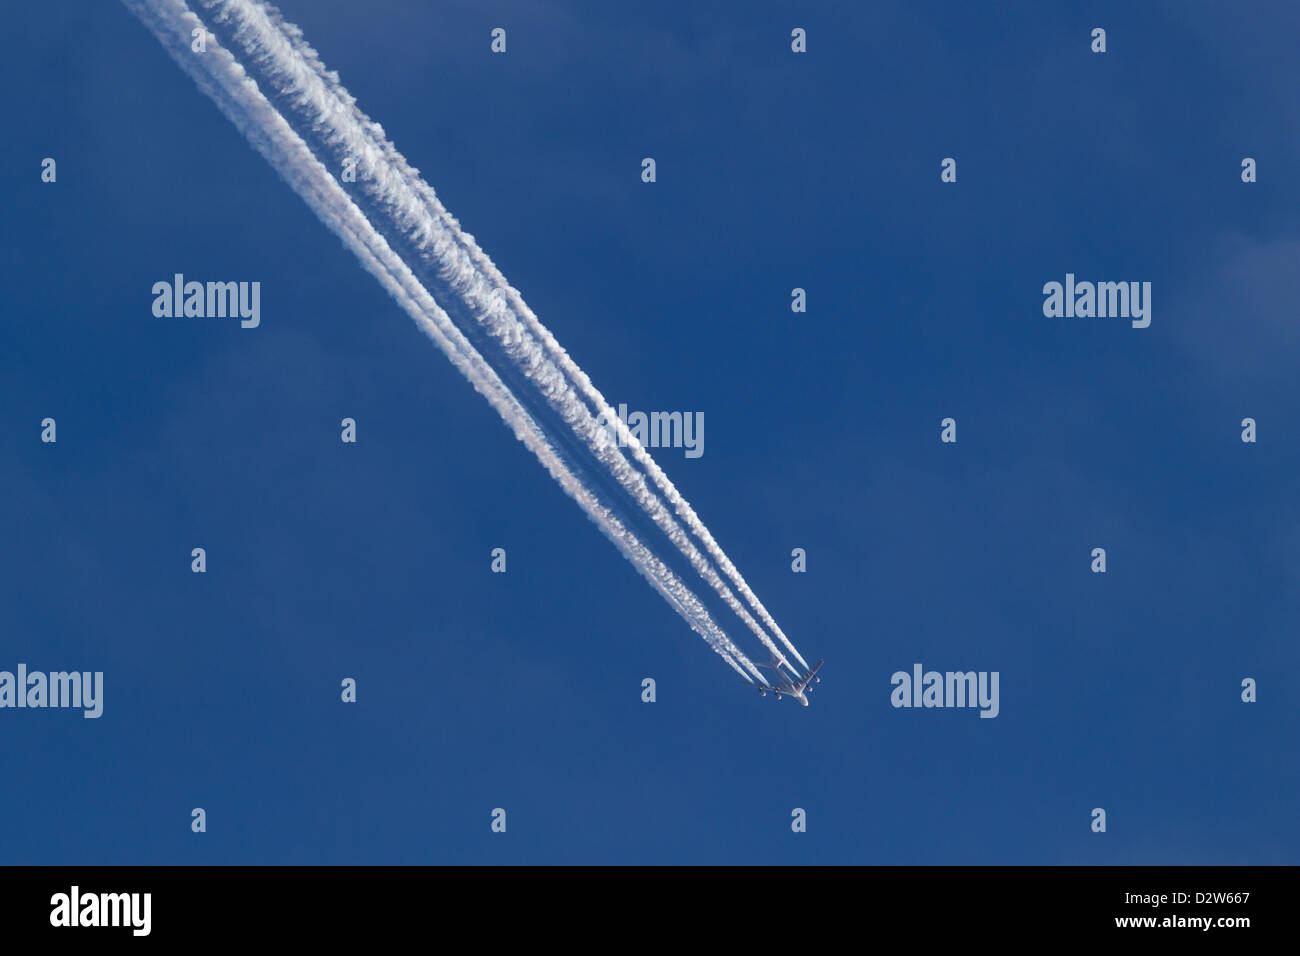 Jet plane with vapor trails - Stock Image